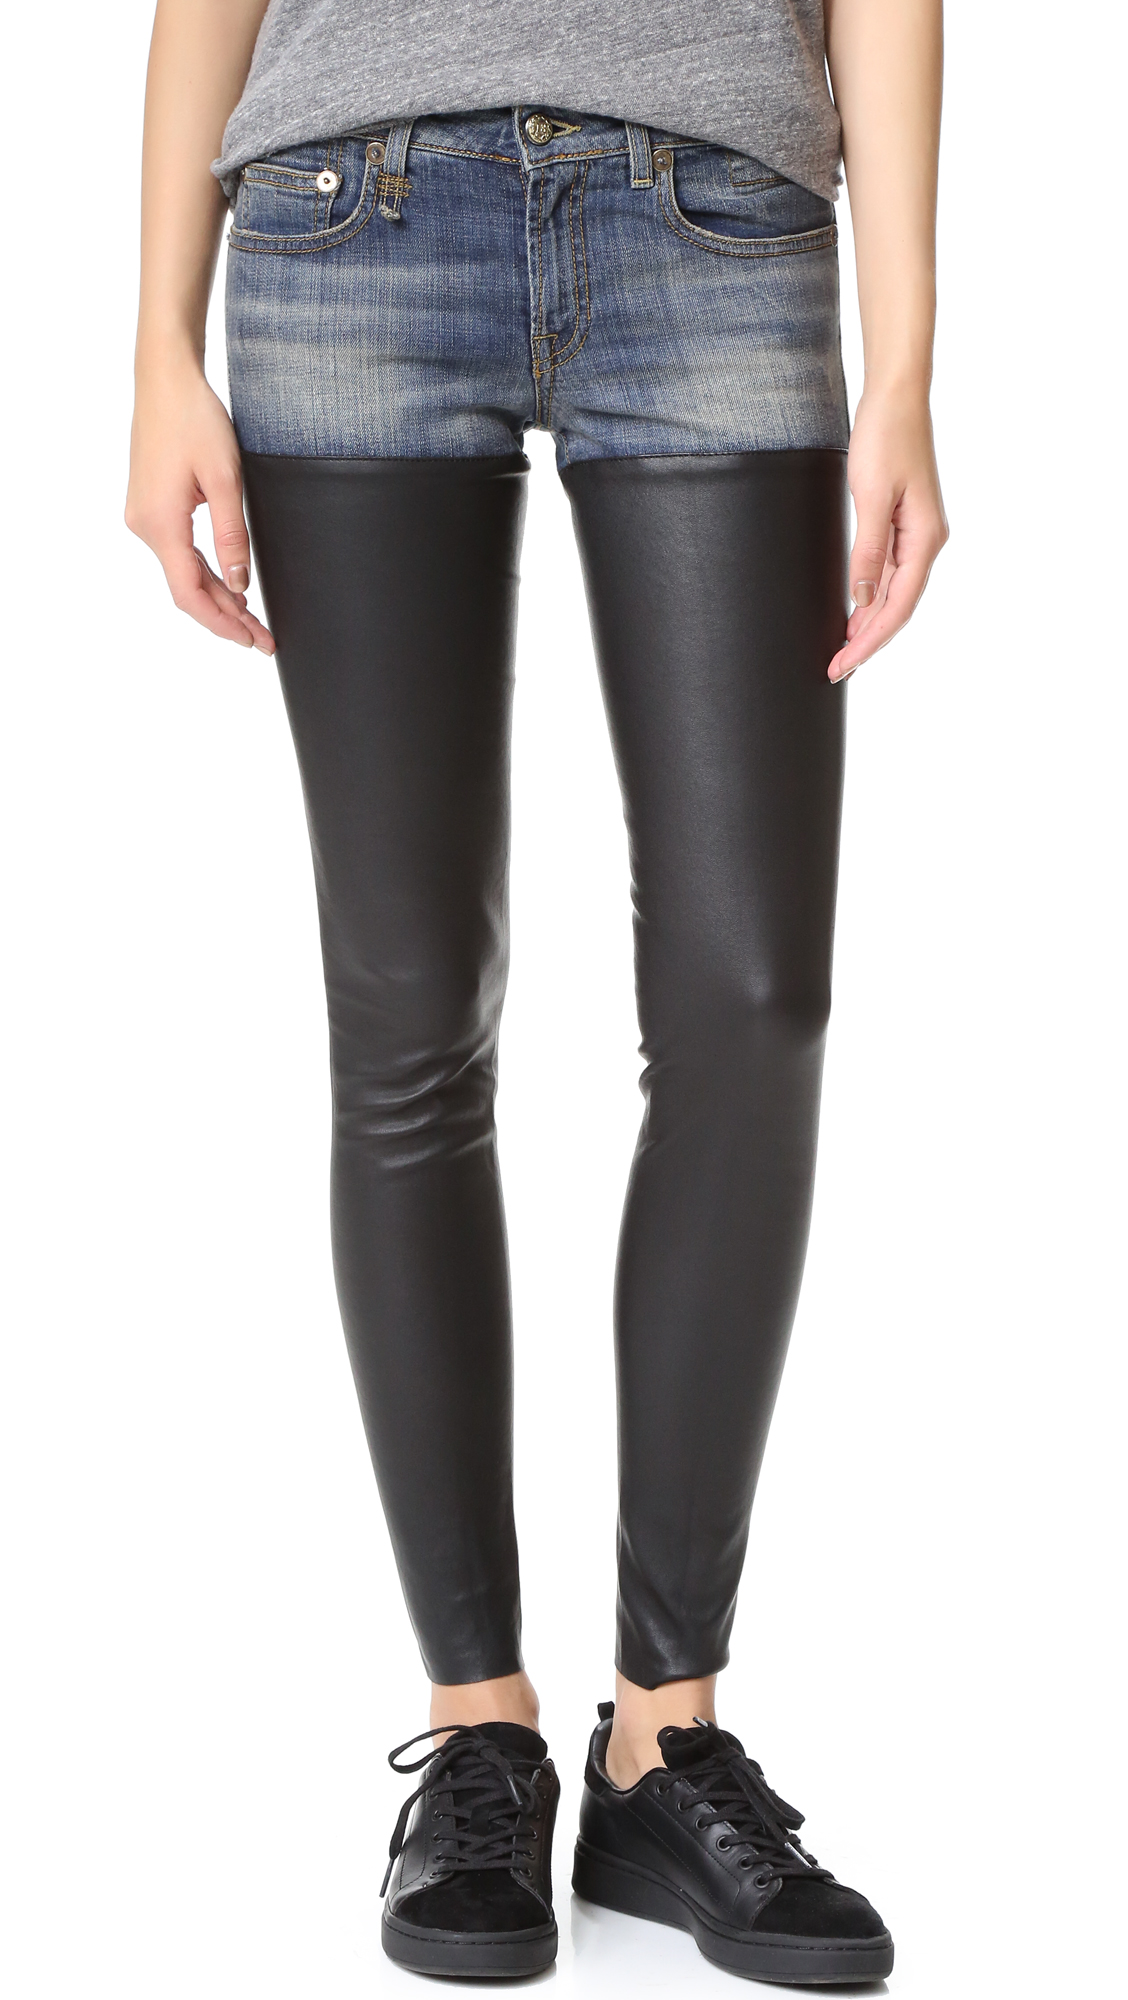 R13 Leather Chap Jeans Shopbop Save Up To 25 Use Code More18 Inside Flats Jessie Navy